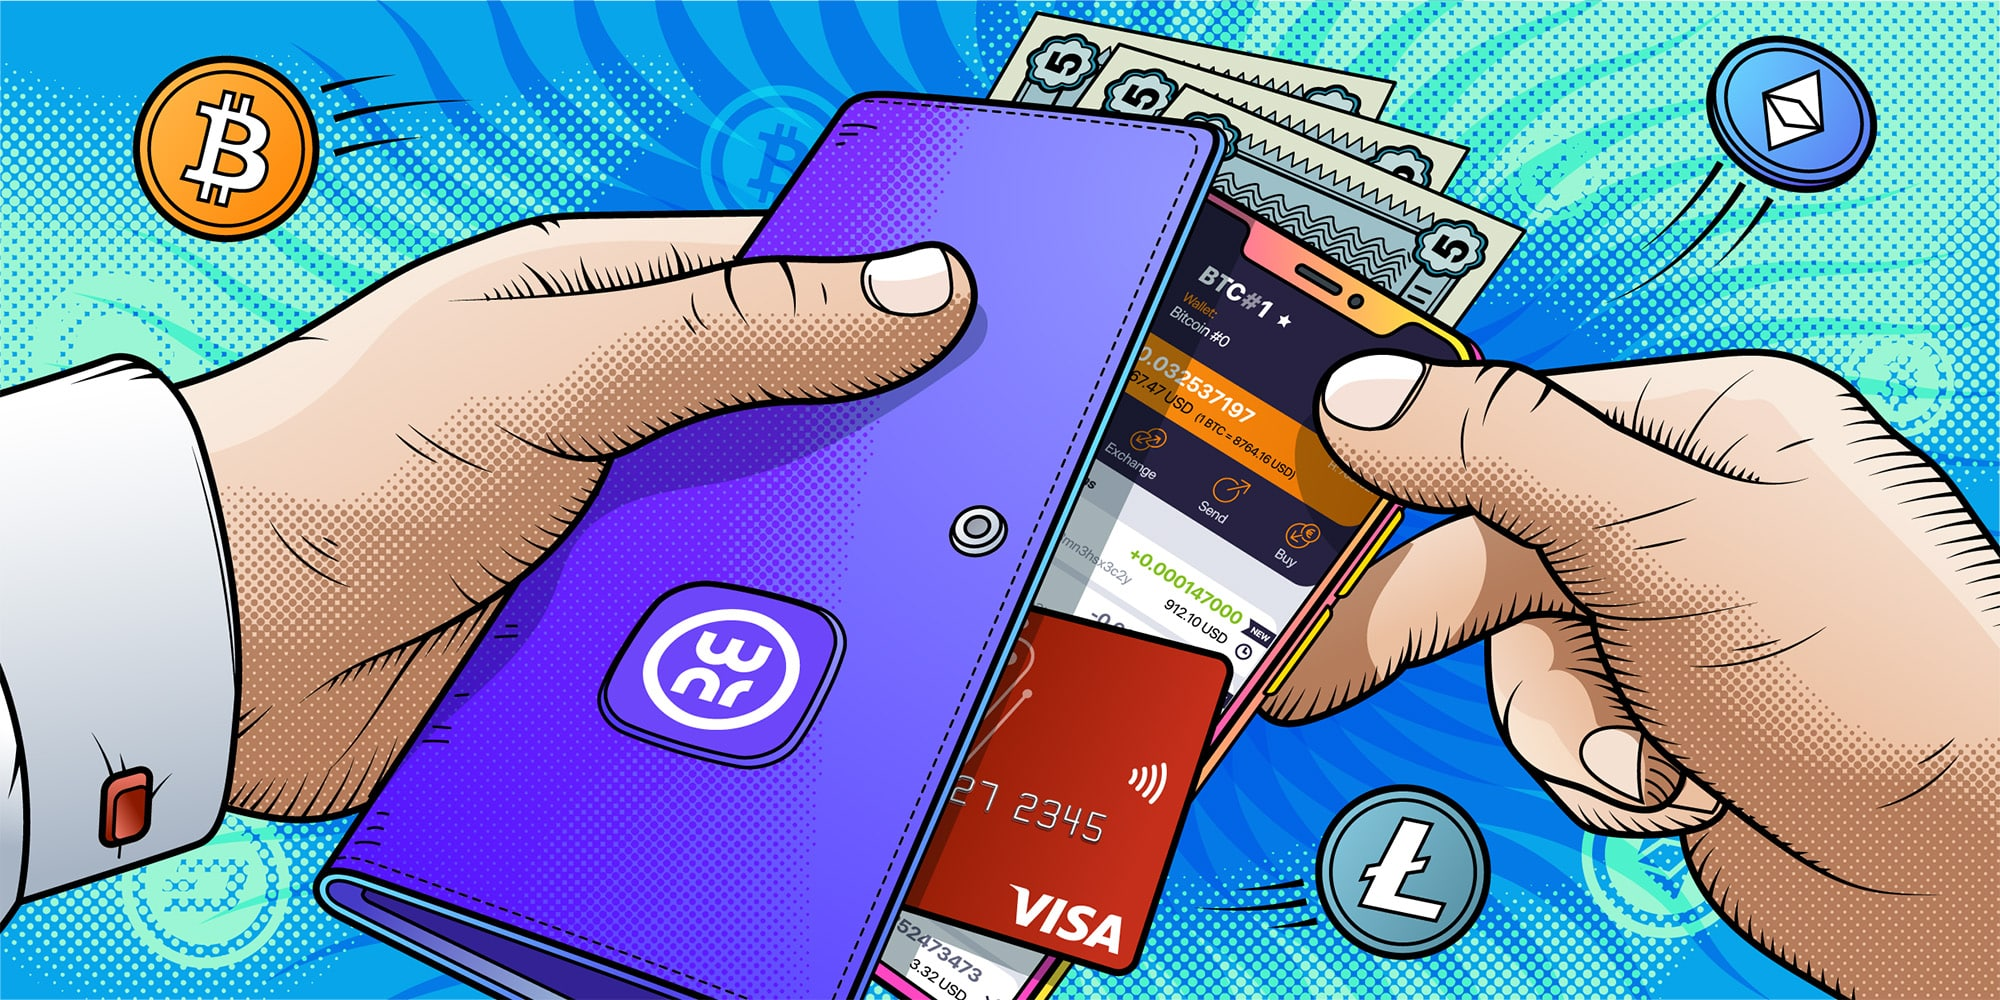 How to Convert Crypto to Fiat Safely, Legally, and Easily